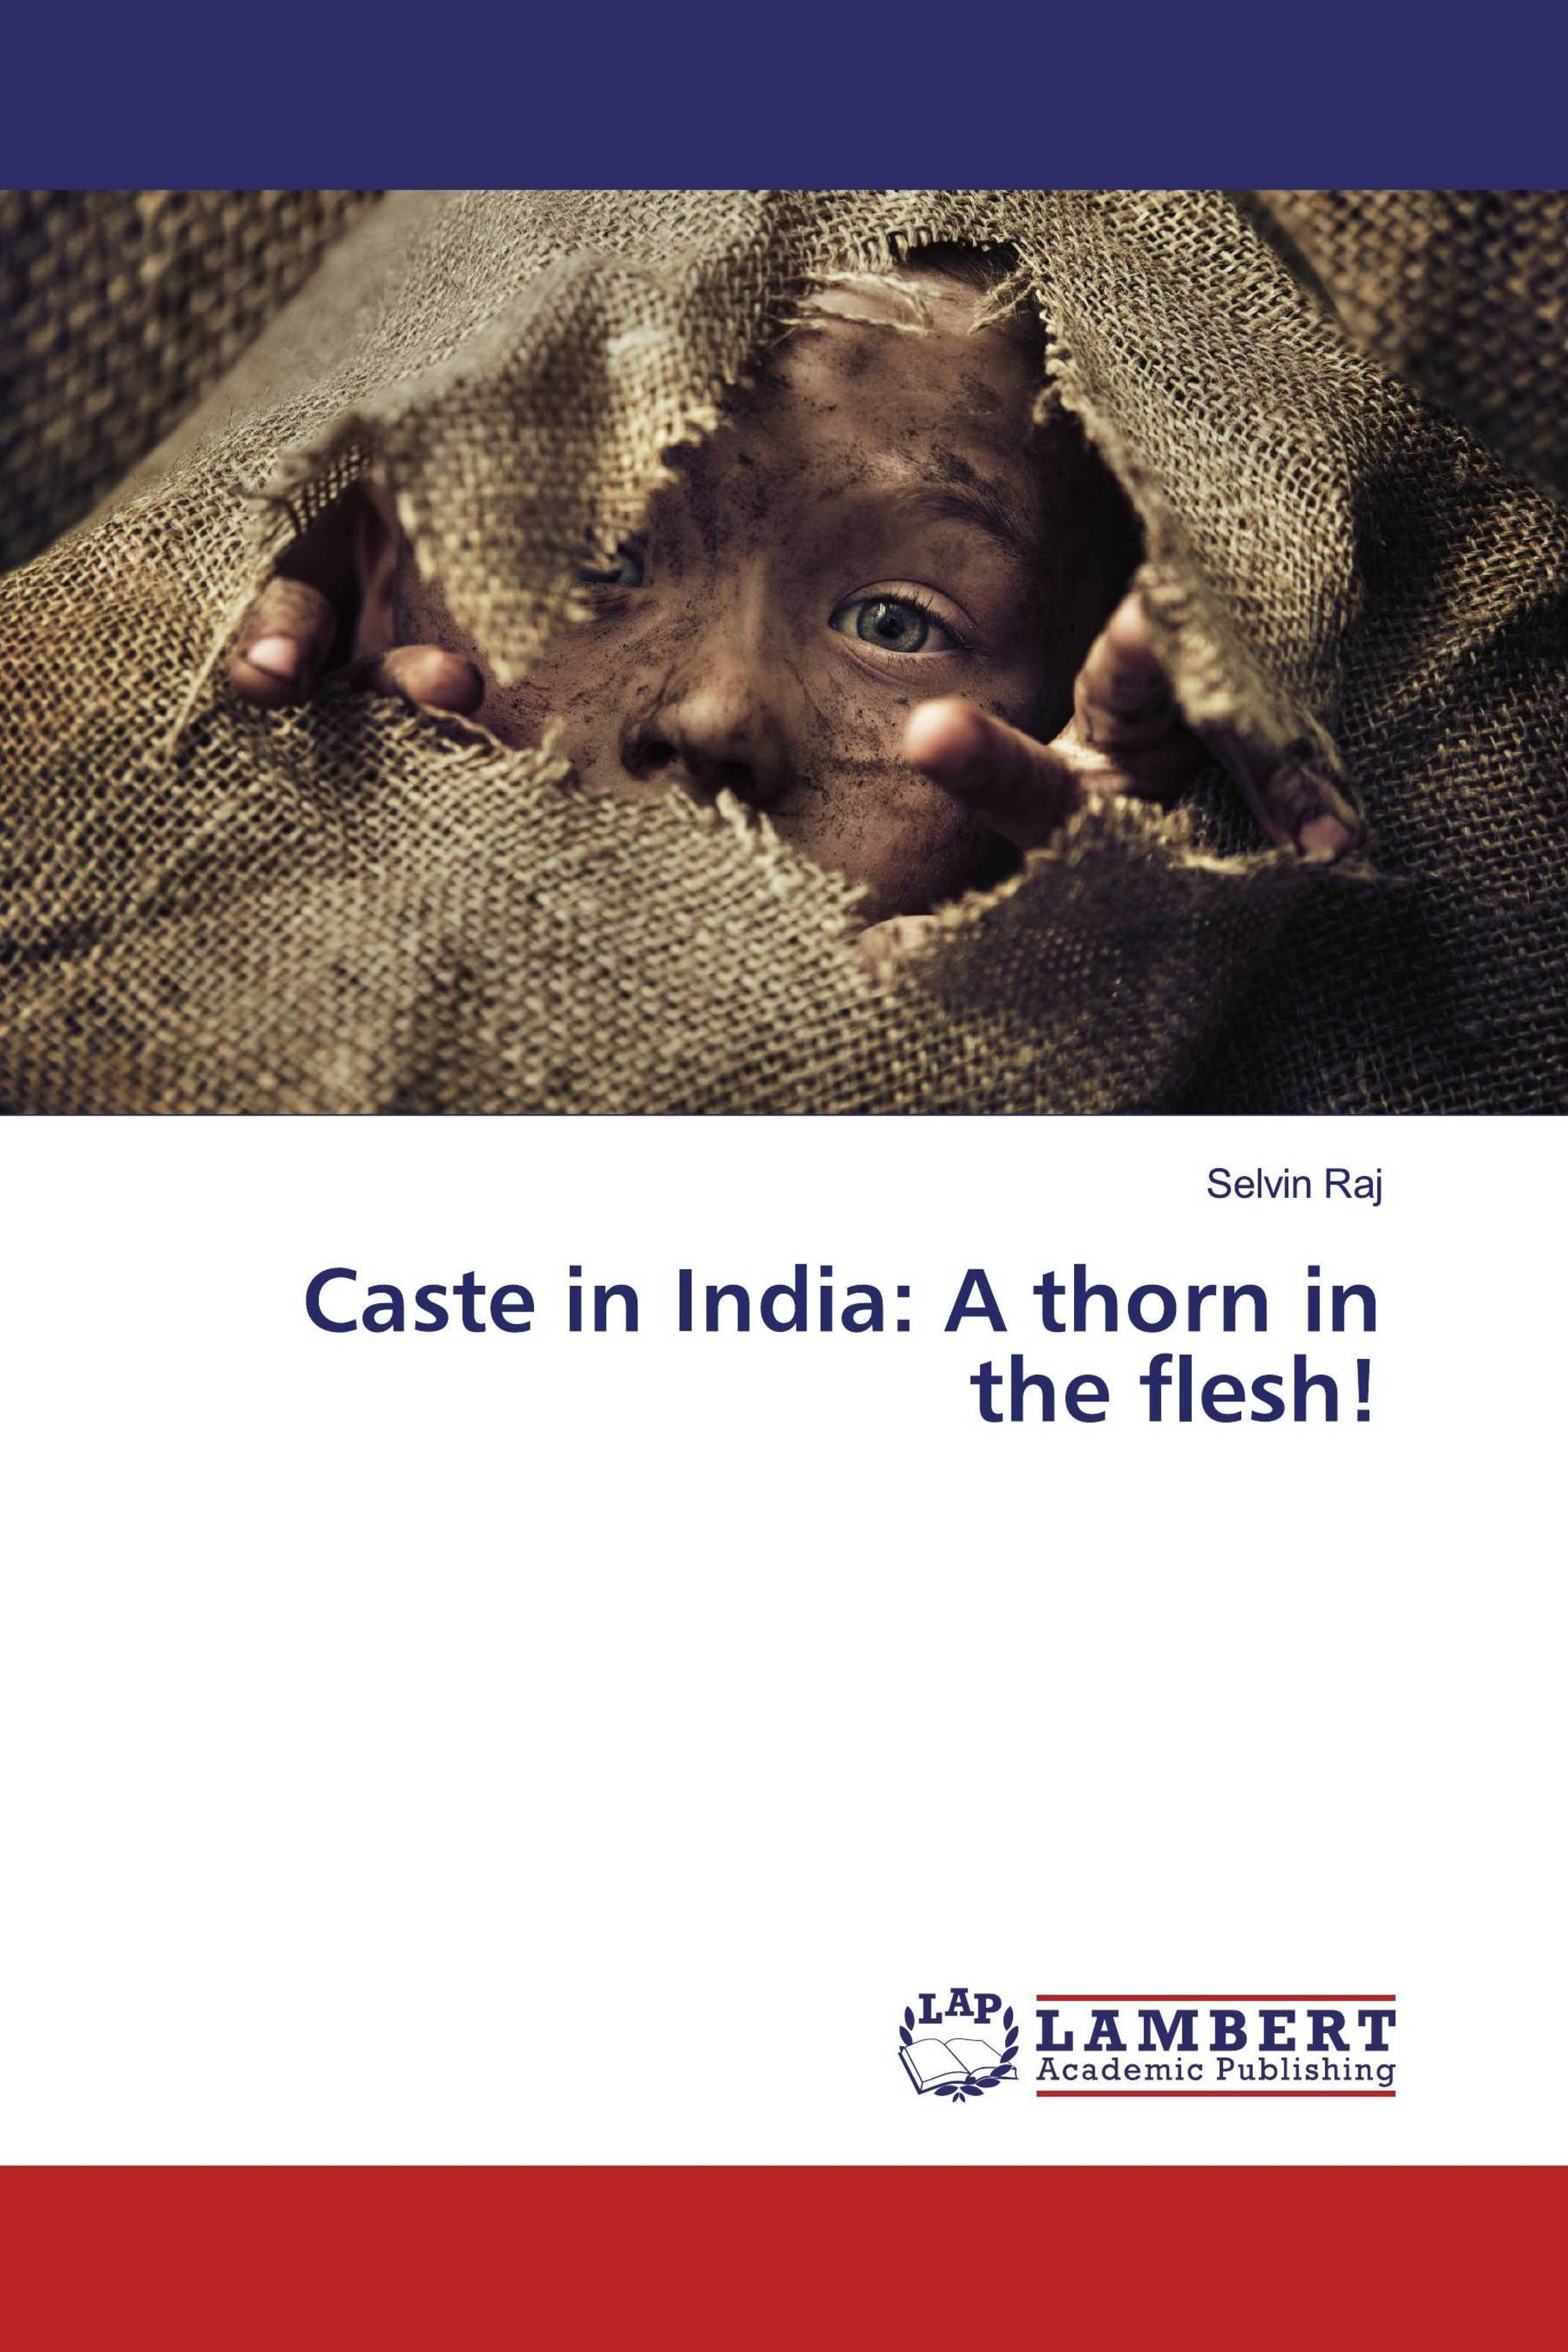 Caste in India: A thorn in the flesh!